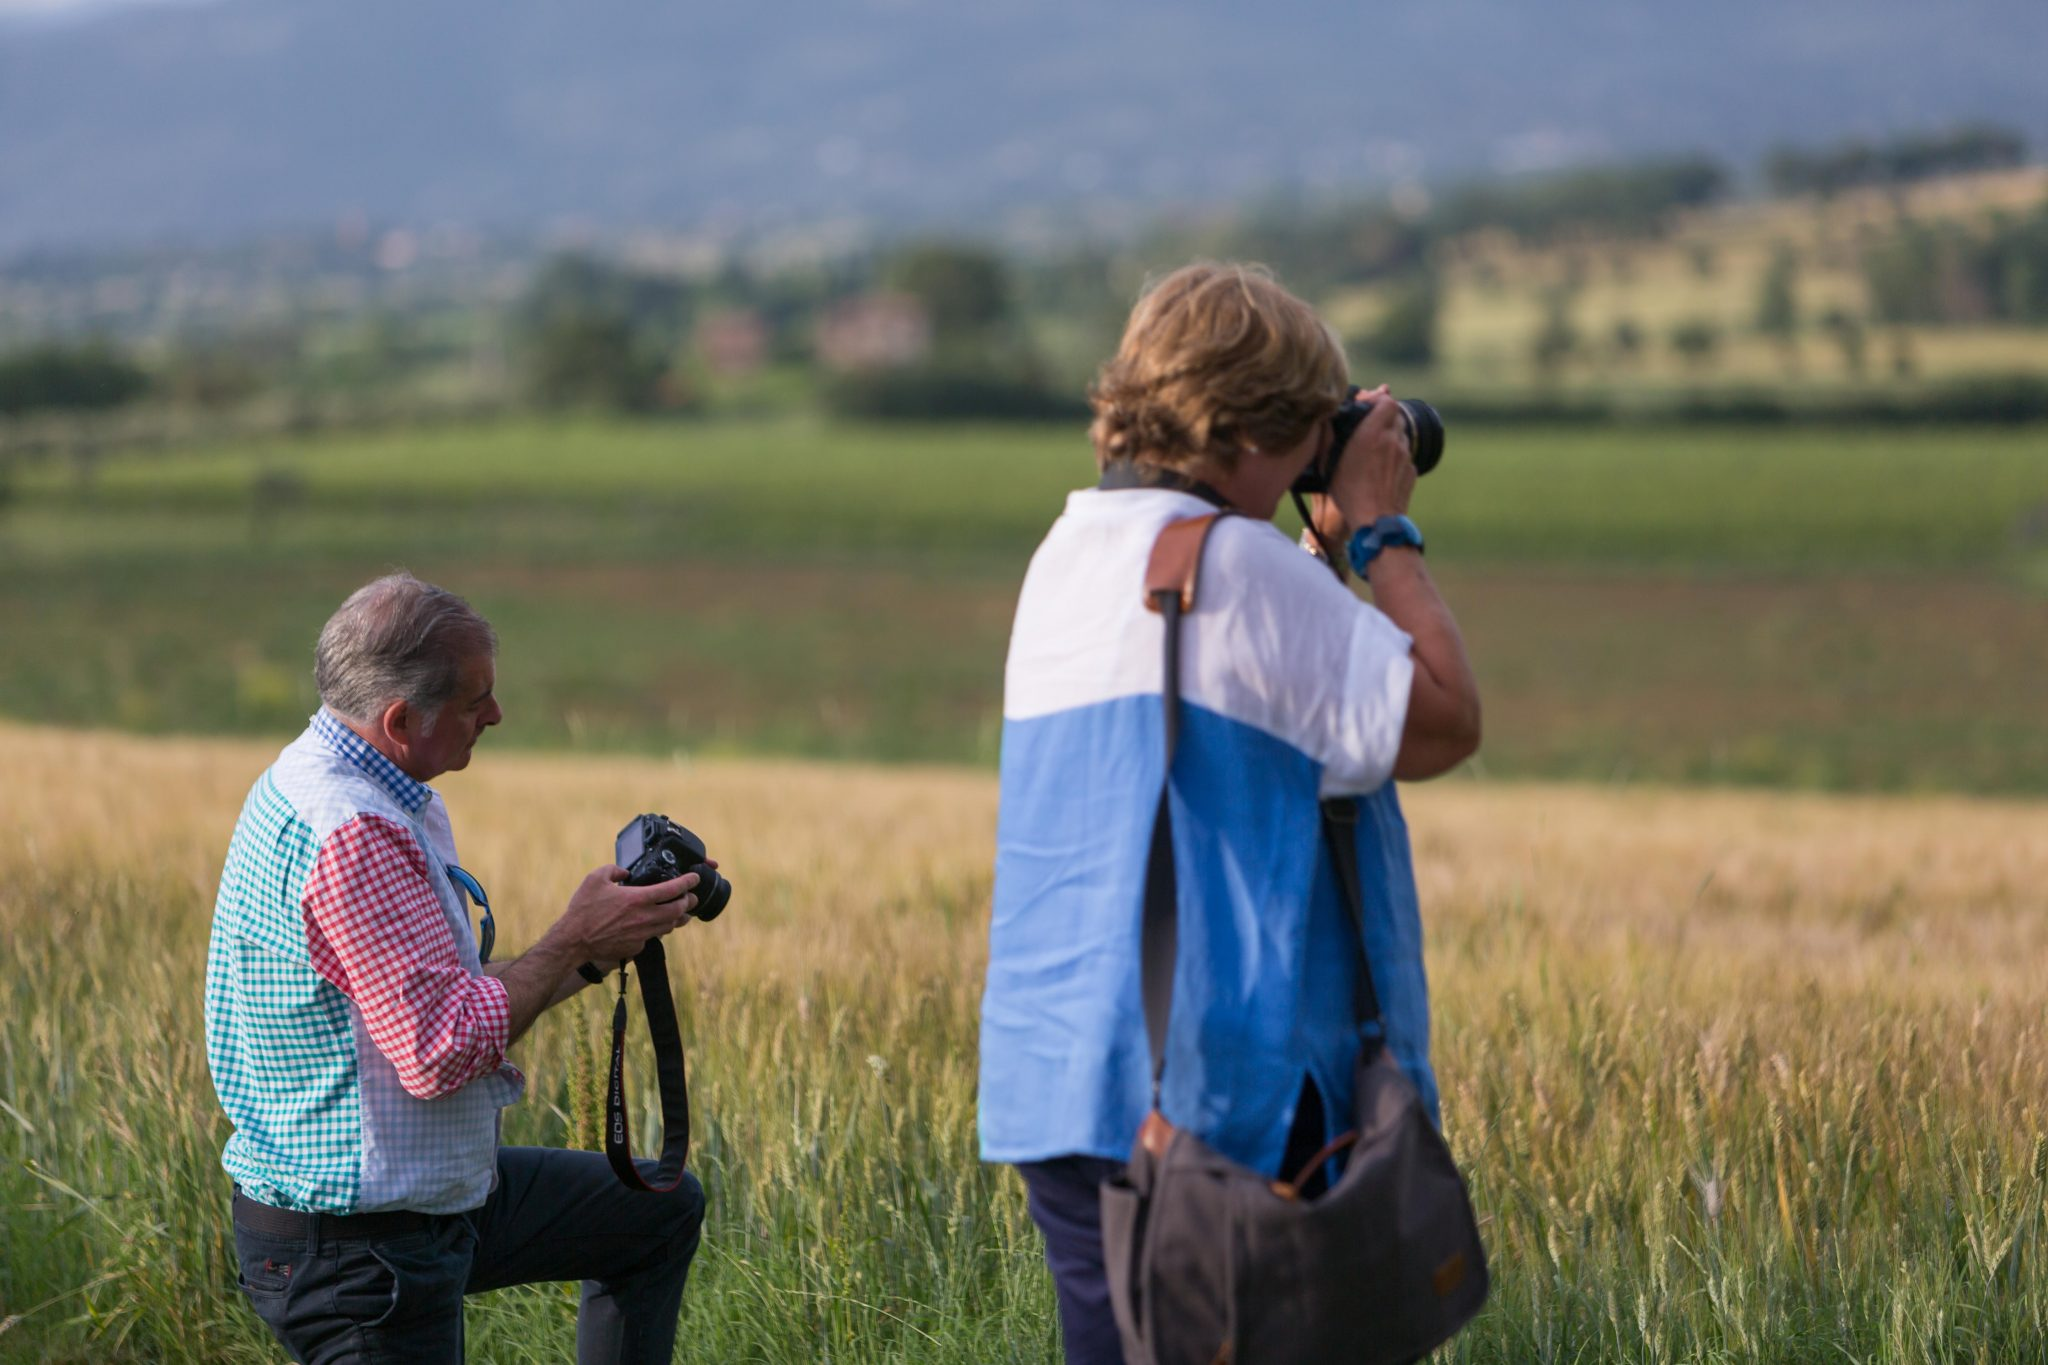 photography courses italy holiday retreat tuition learn photograph lessons - 3